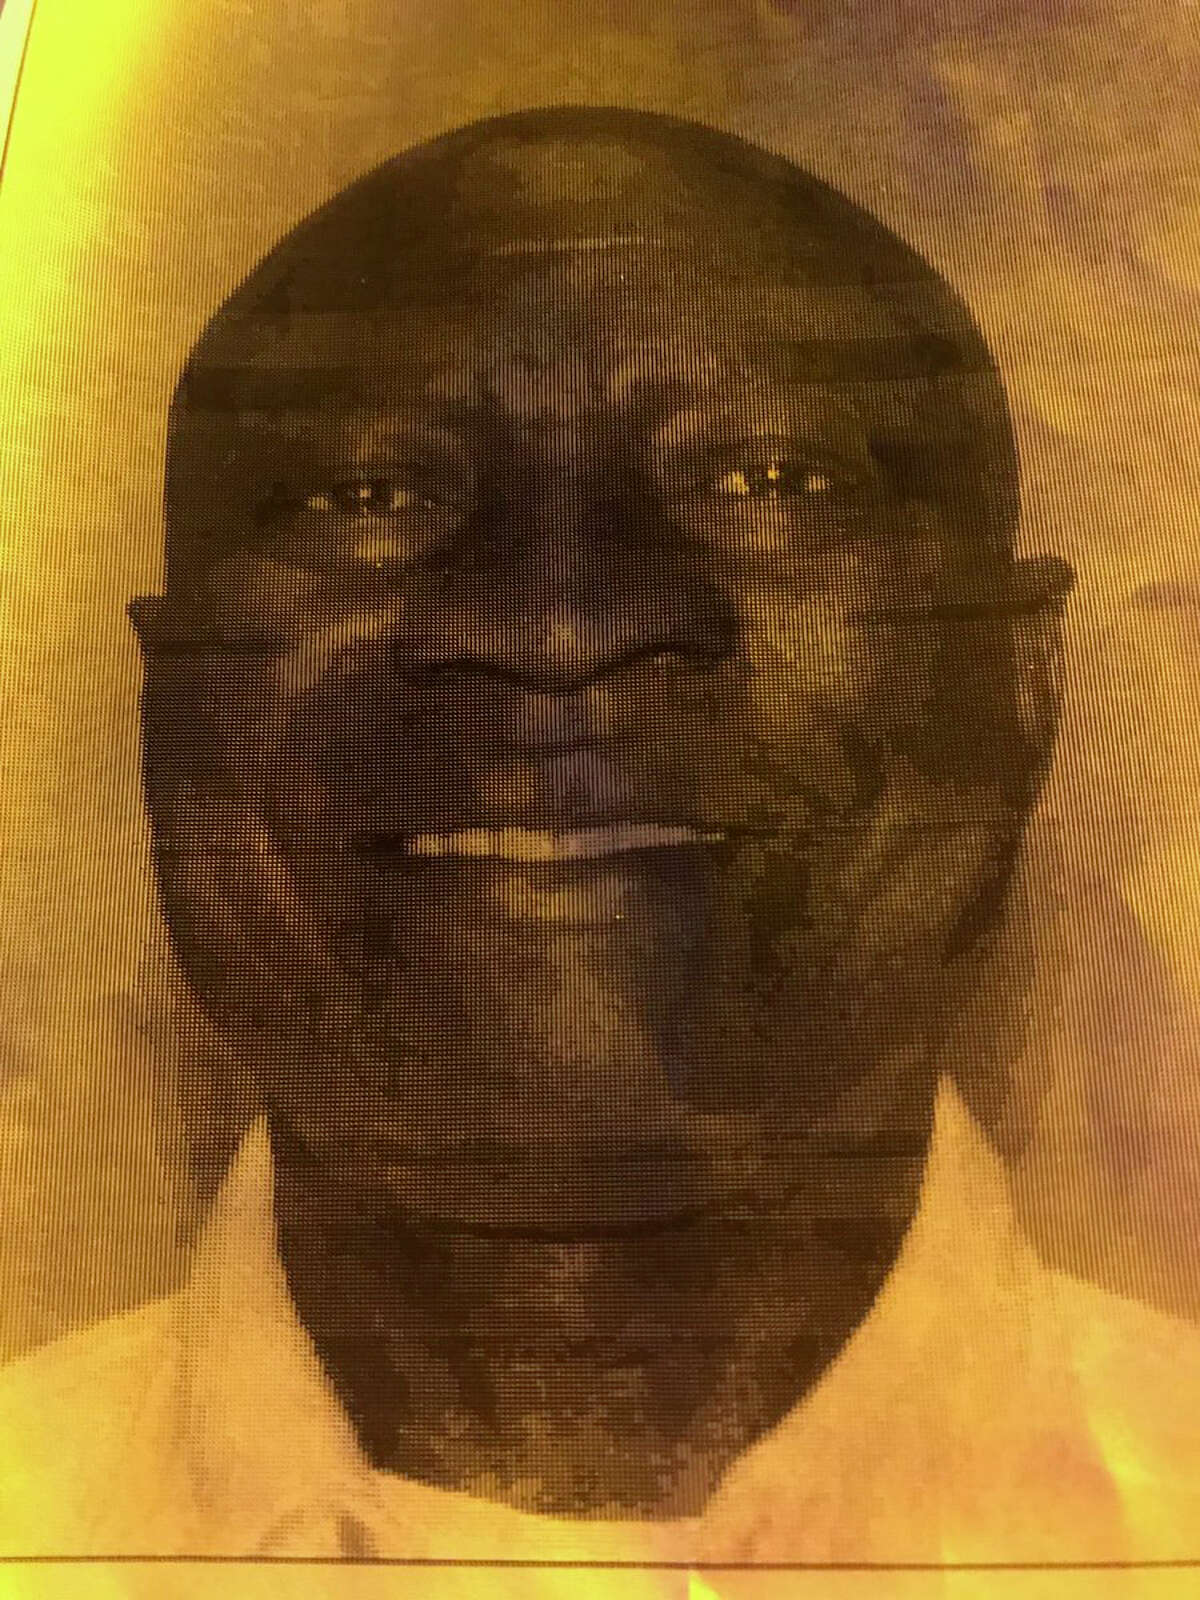 Investigators are seeking Arthur Edigin, 62, in connection with the shooting outside Christ the Redeemer Catholic Church on Huffmeister. He's 5'4